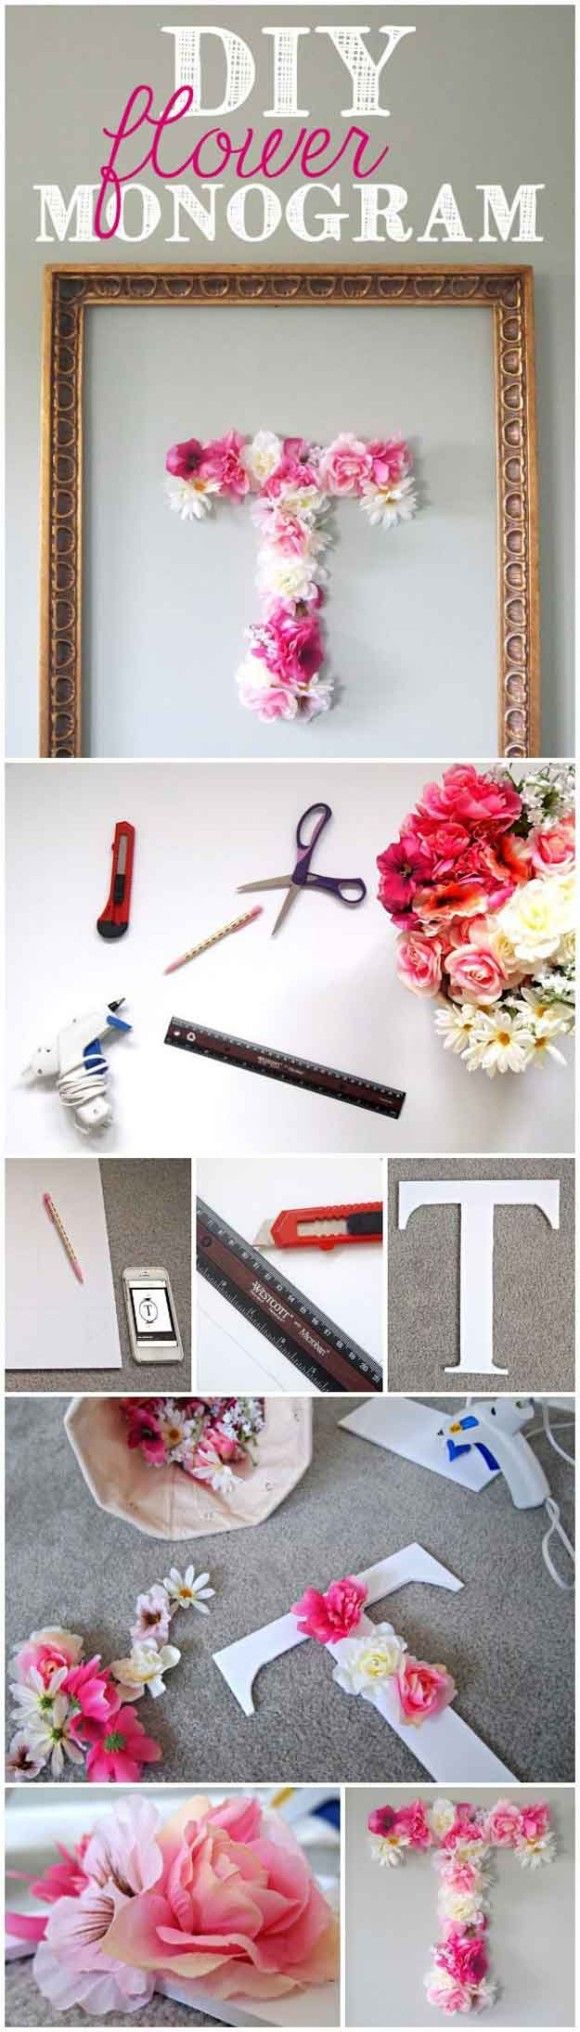 best 20+ cute room decor ideas on pinterest | cute room ideas, diy